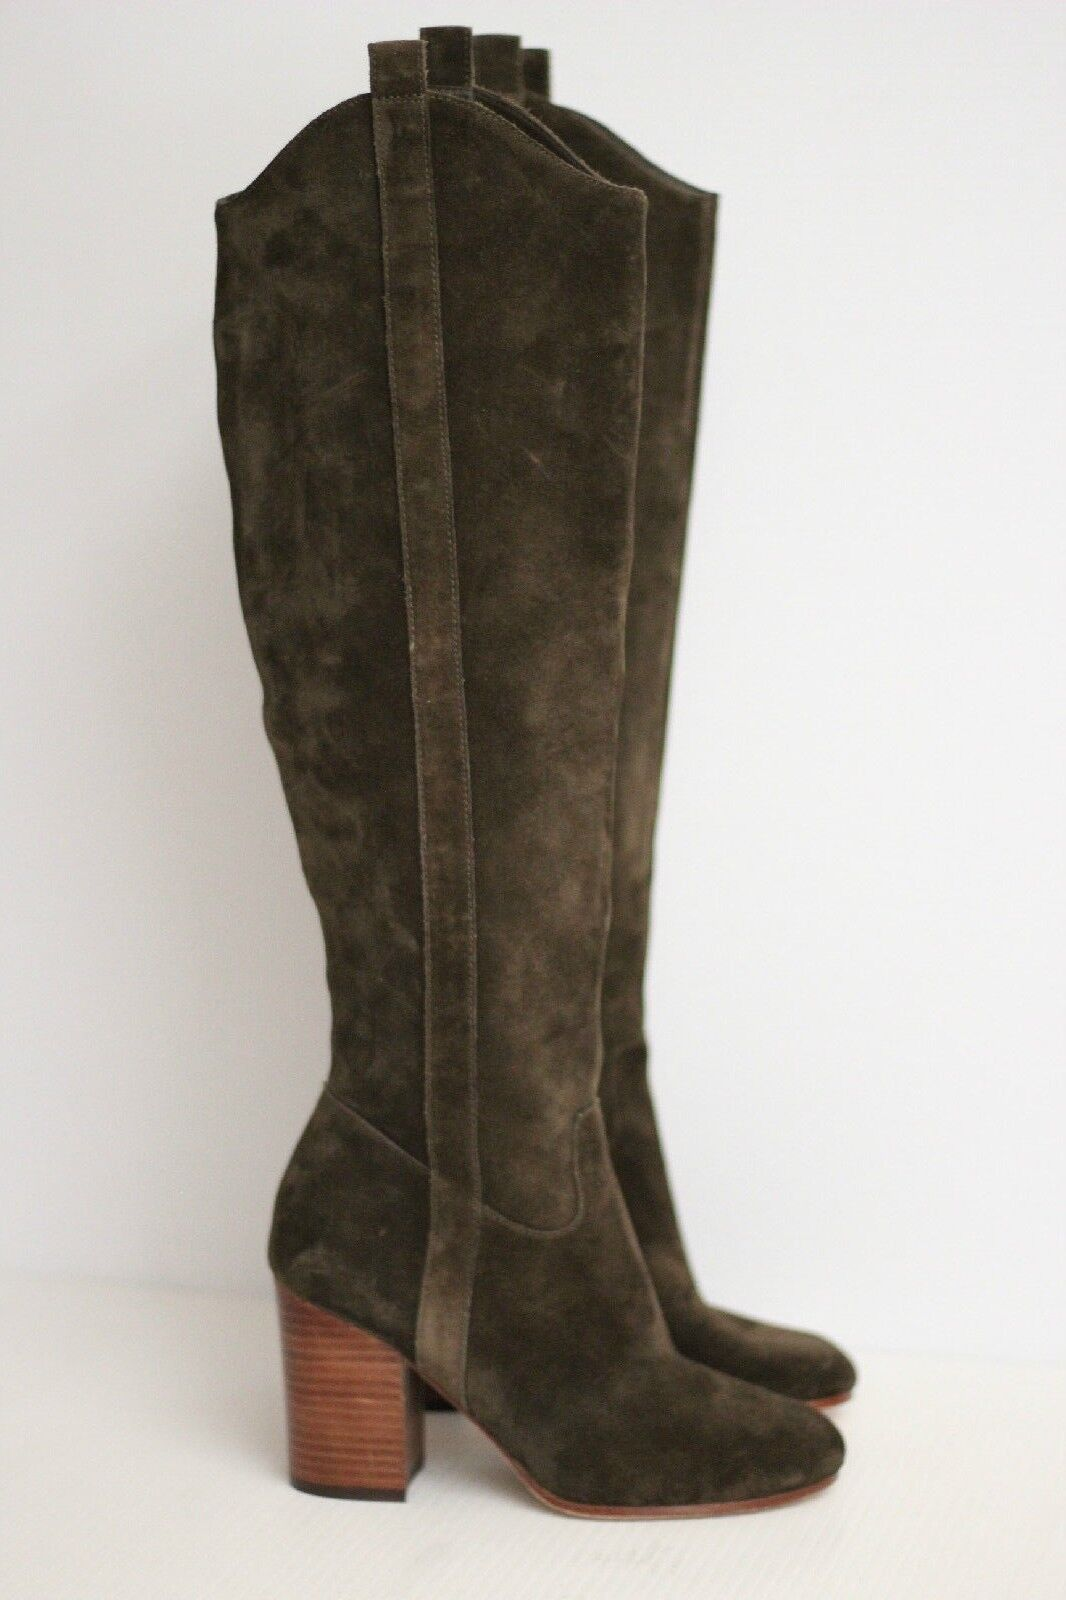 NEW Via Spiga Women's 'Babe' Knee-High Boots - Brown Suede - Size 5 M